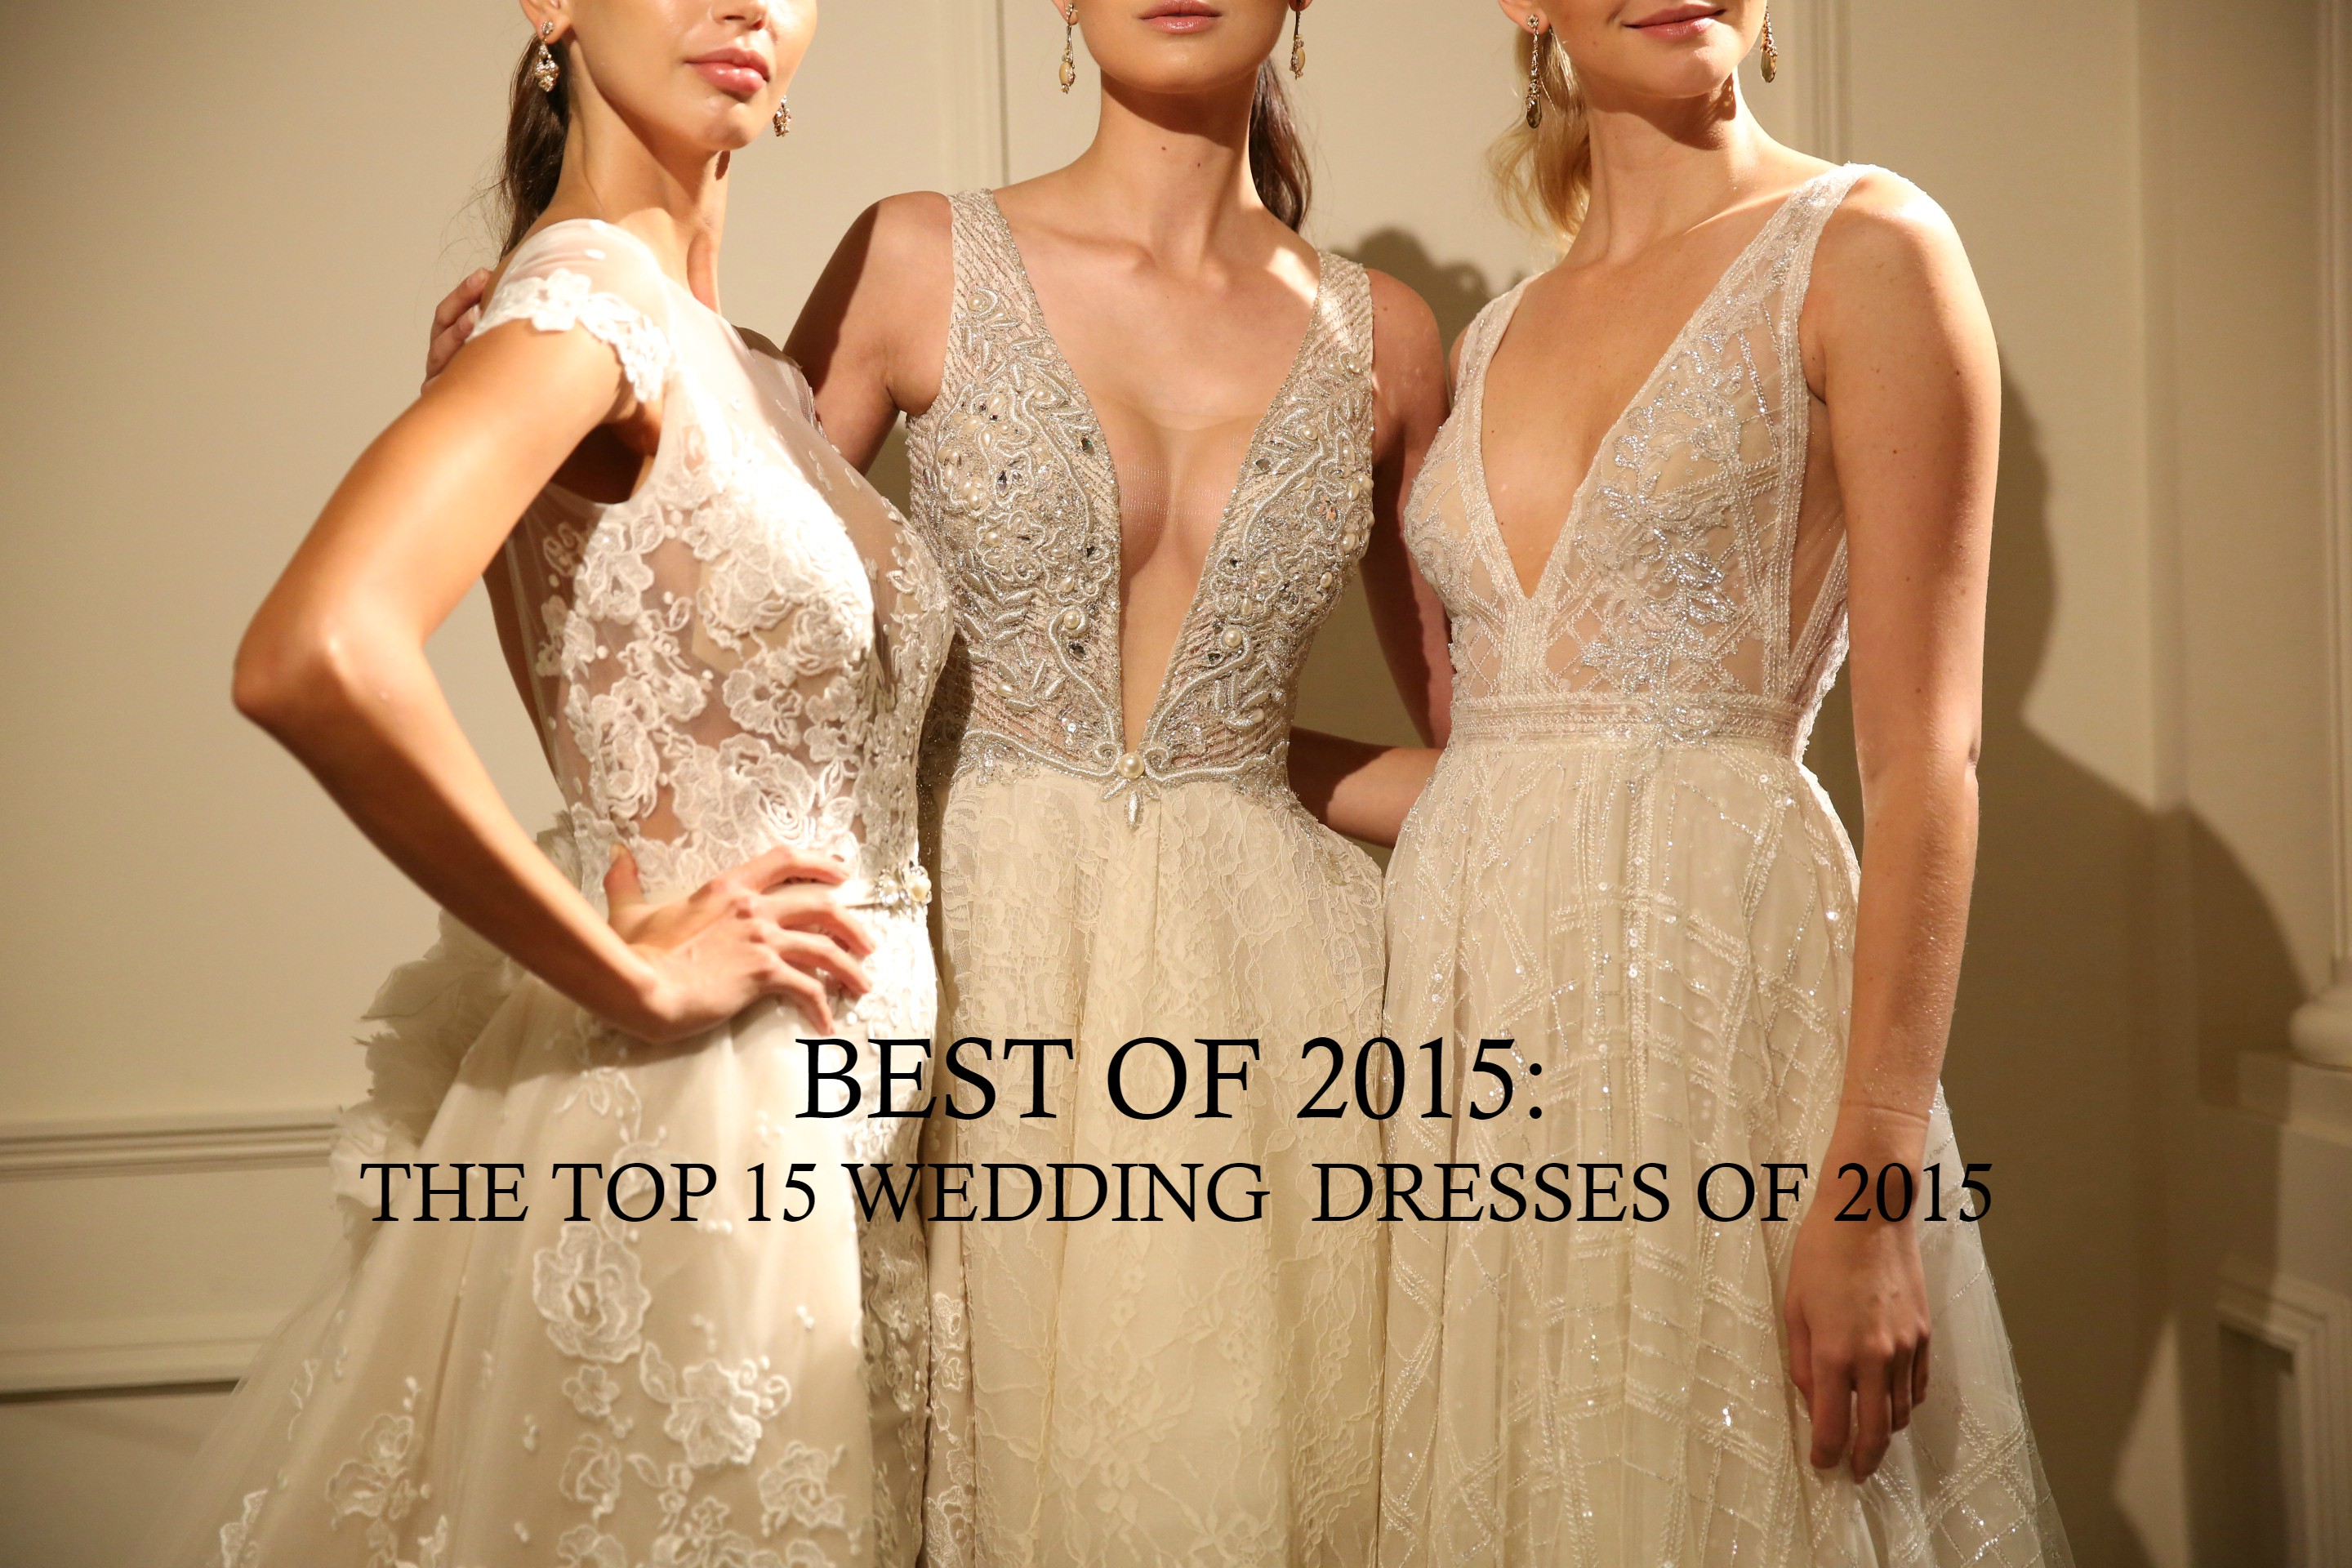 Wedding Gowns 2015: Best Of 2015: The Top 15 Wedding Dresses Of 2015